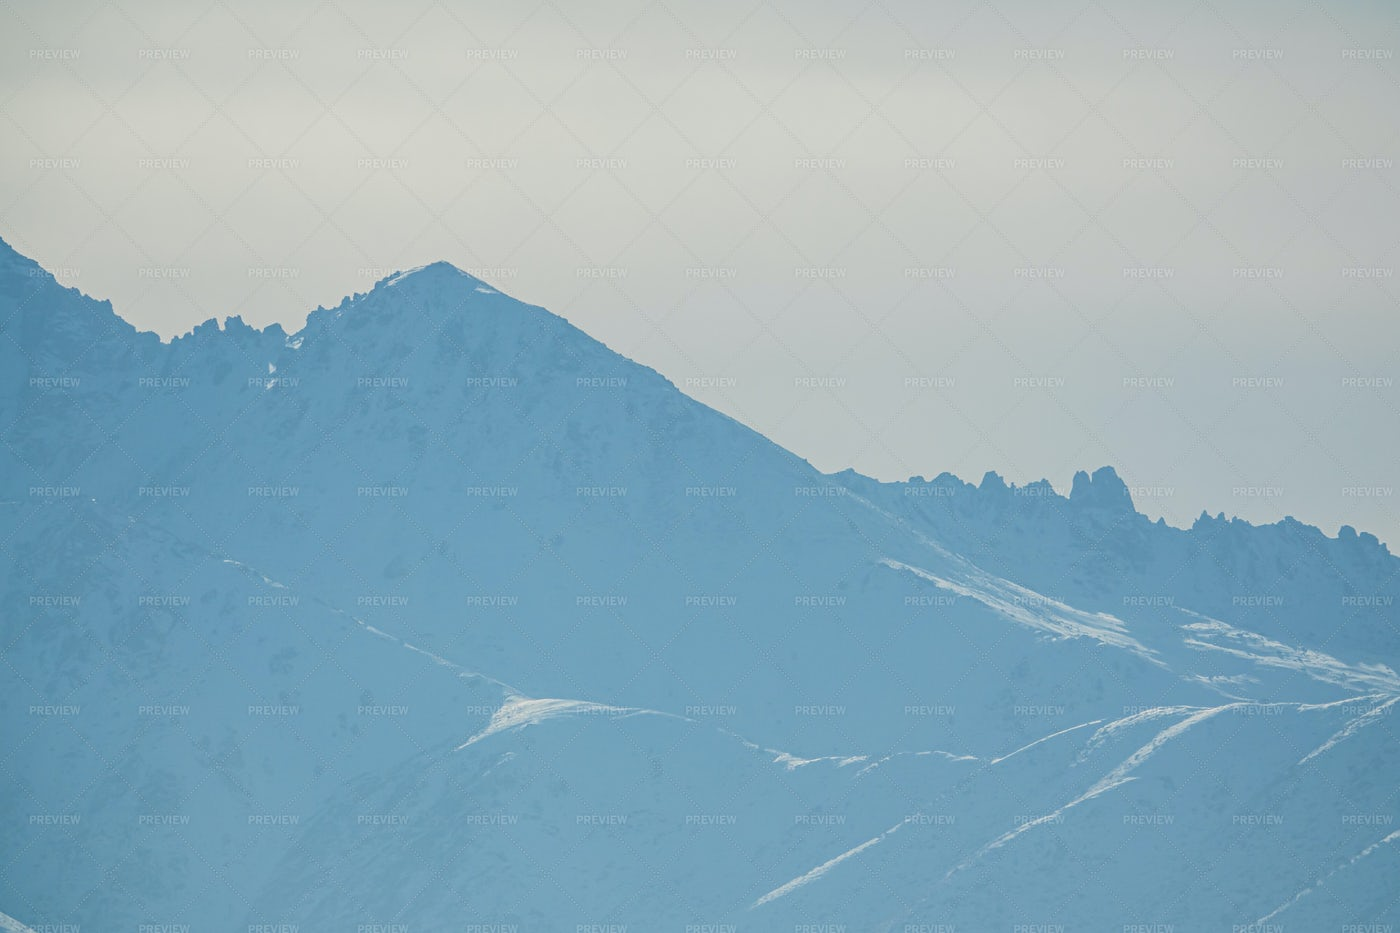 High Peaks Of Snowy Mountains: Stock Photos